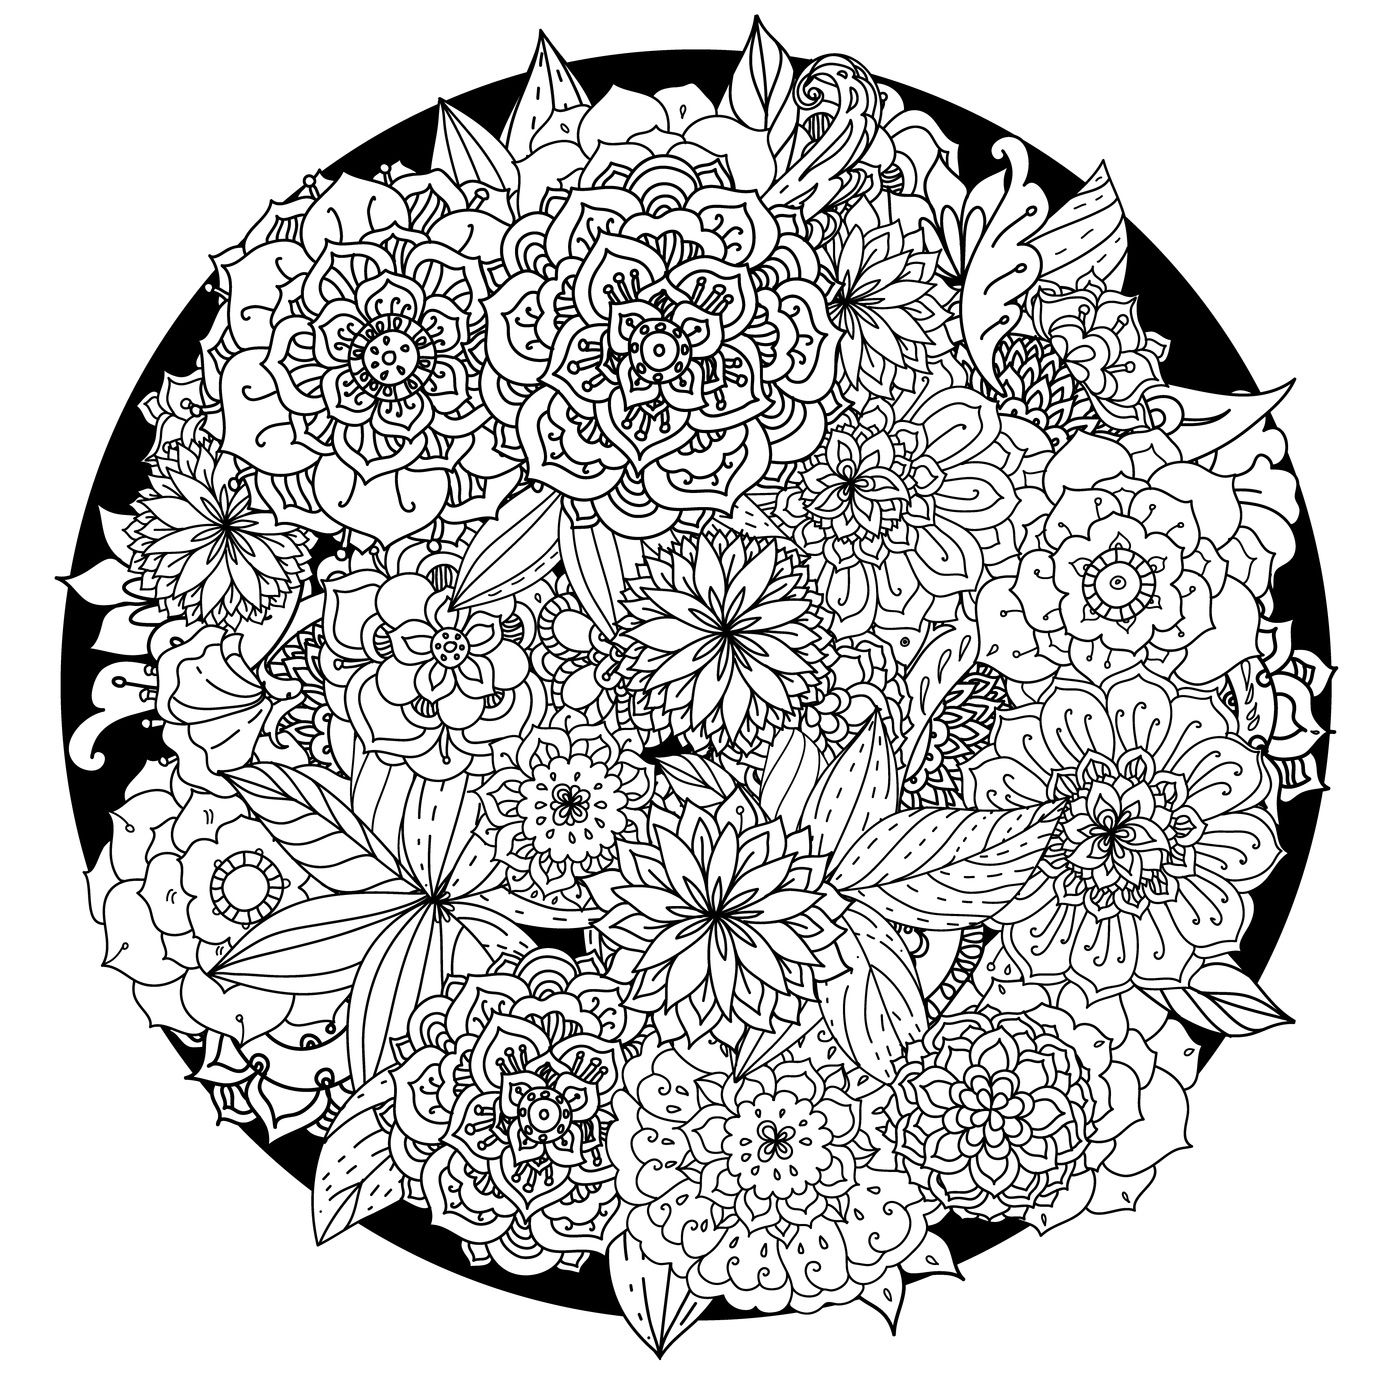 these printable abstract coloring pages relieve stress and help you meditate - Adult Coloring Pages Mandala